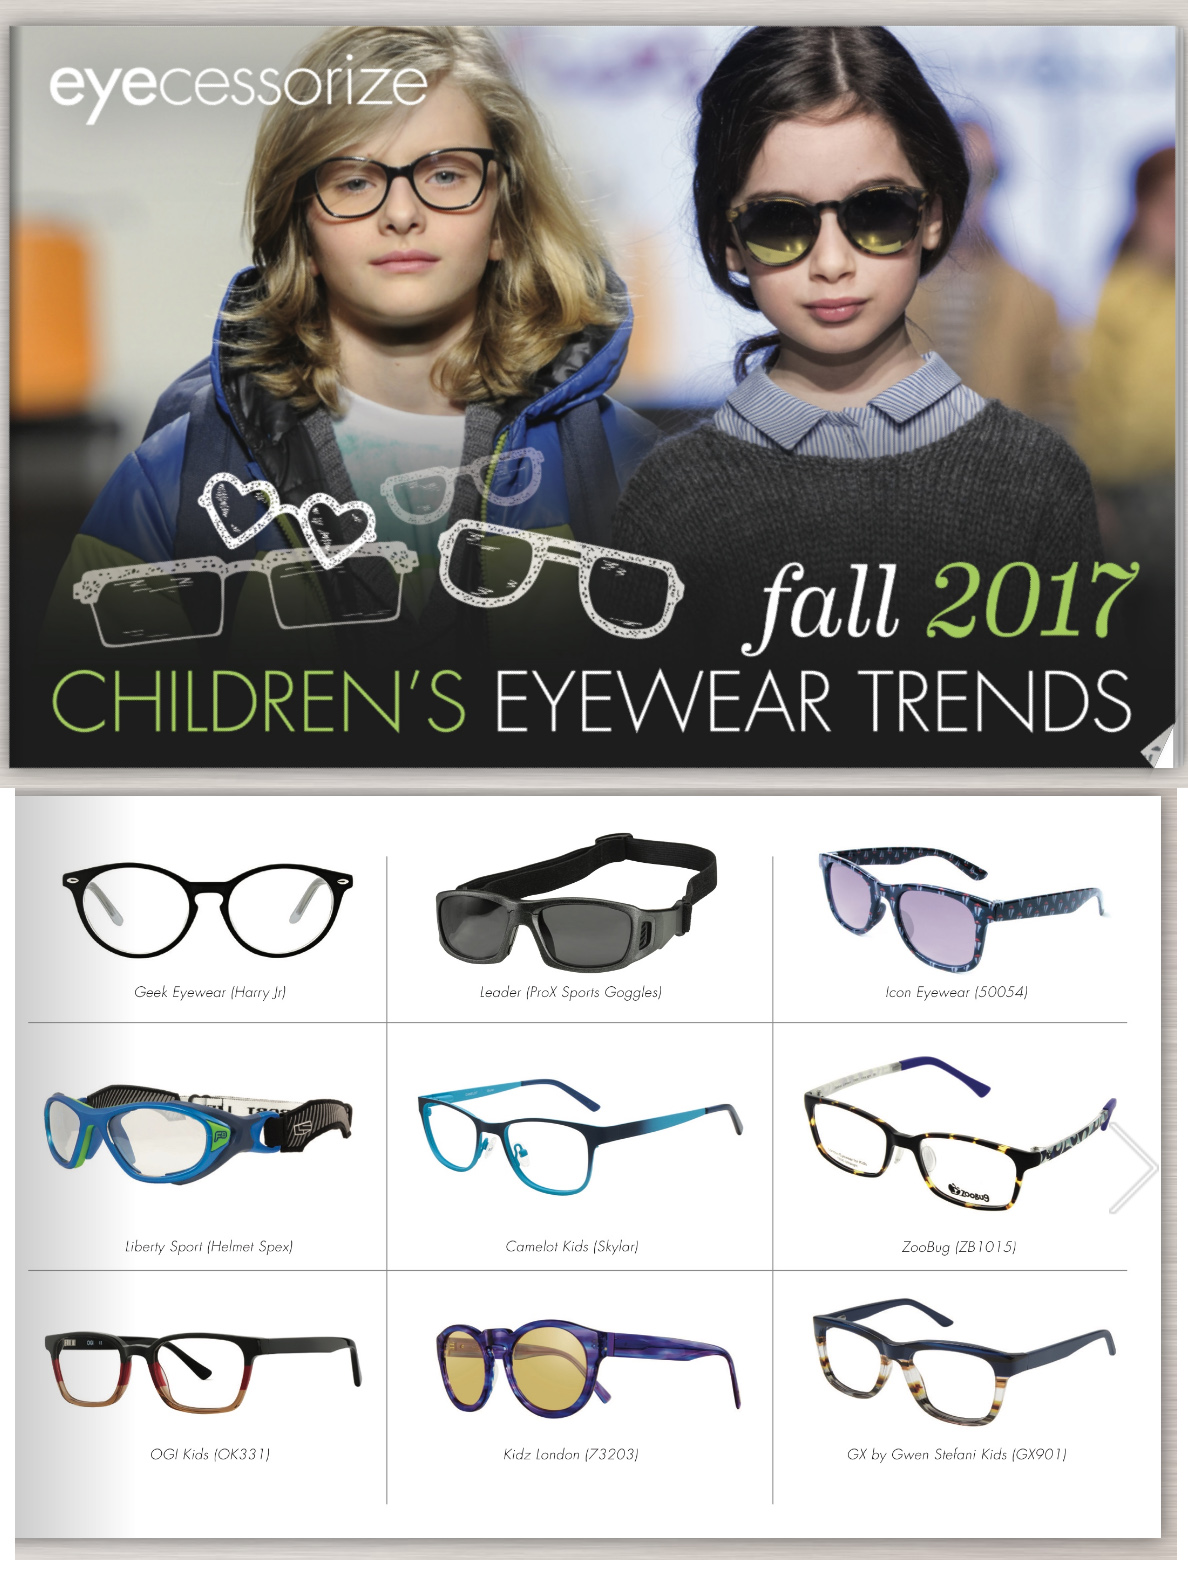 geek-eyewear-in-eyecessorize-boys-girls.jpg